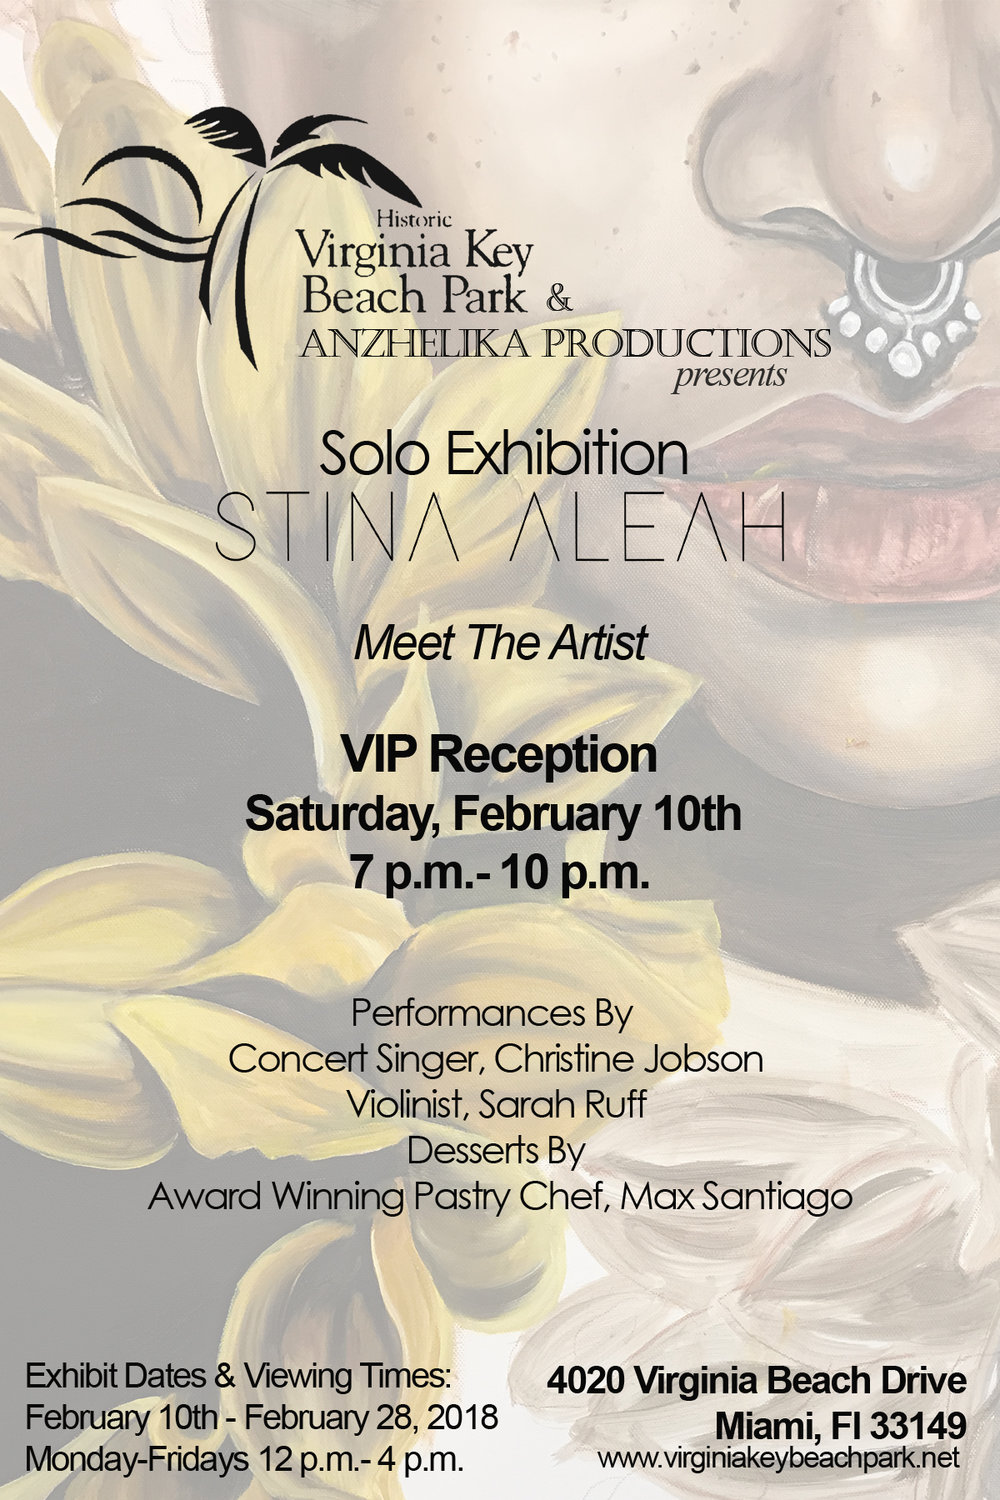 Solo Exhibition with the Virginia Key Beach Park on February 10th 2018. Work will be on display until February 28th, 2018